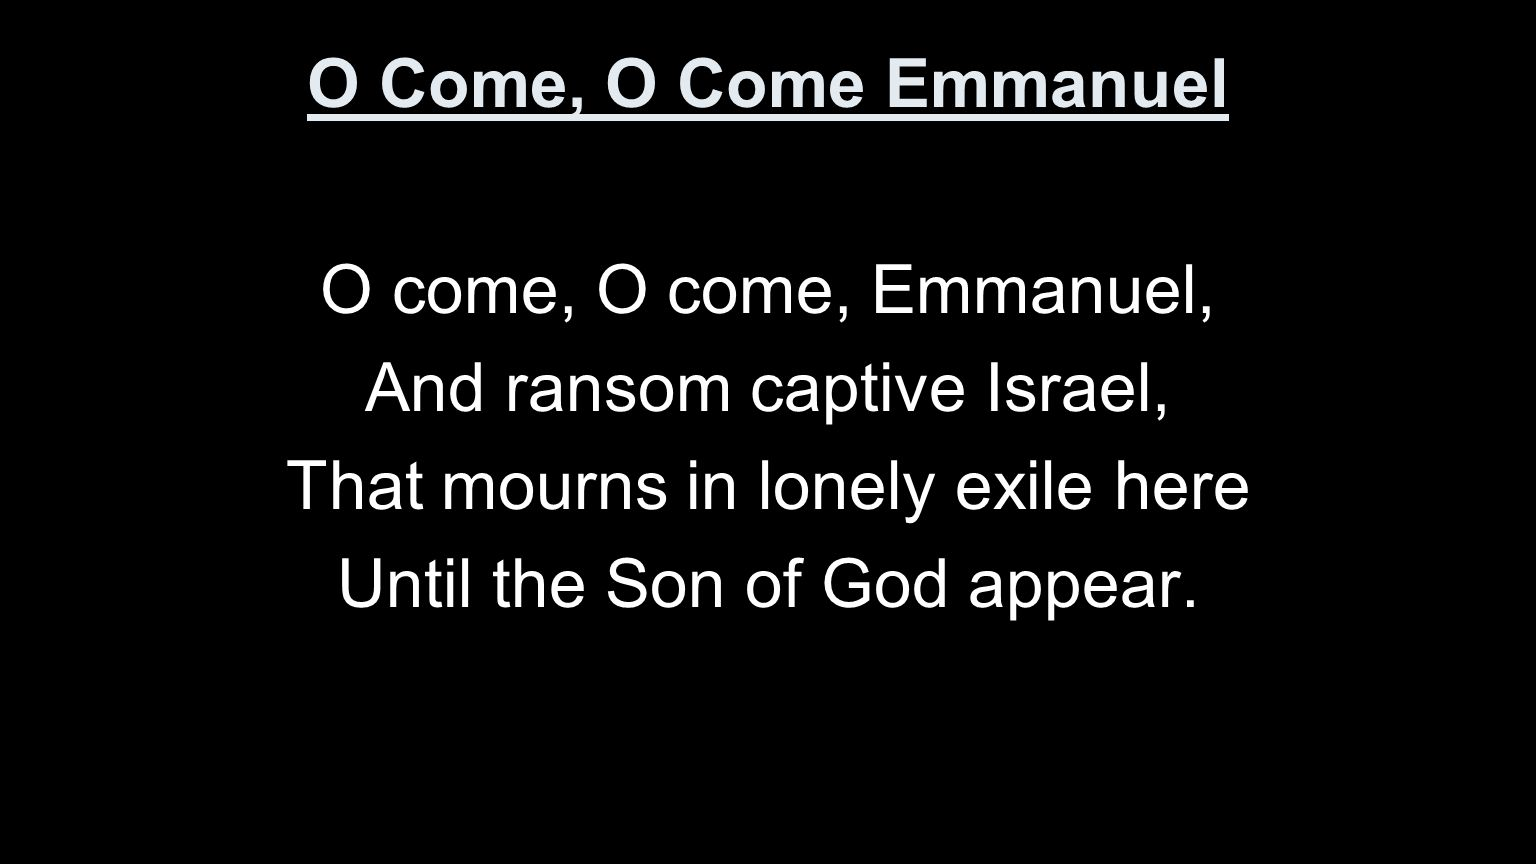 O Come, O Come Emmanuel O come, O come, Emmanuel, And ransom captive Israel, That mourns in lonely exile here Until the Son of God appear.